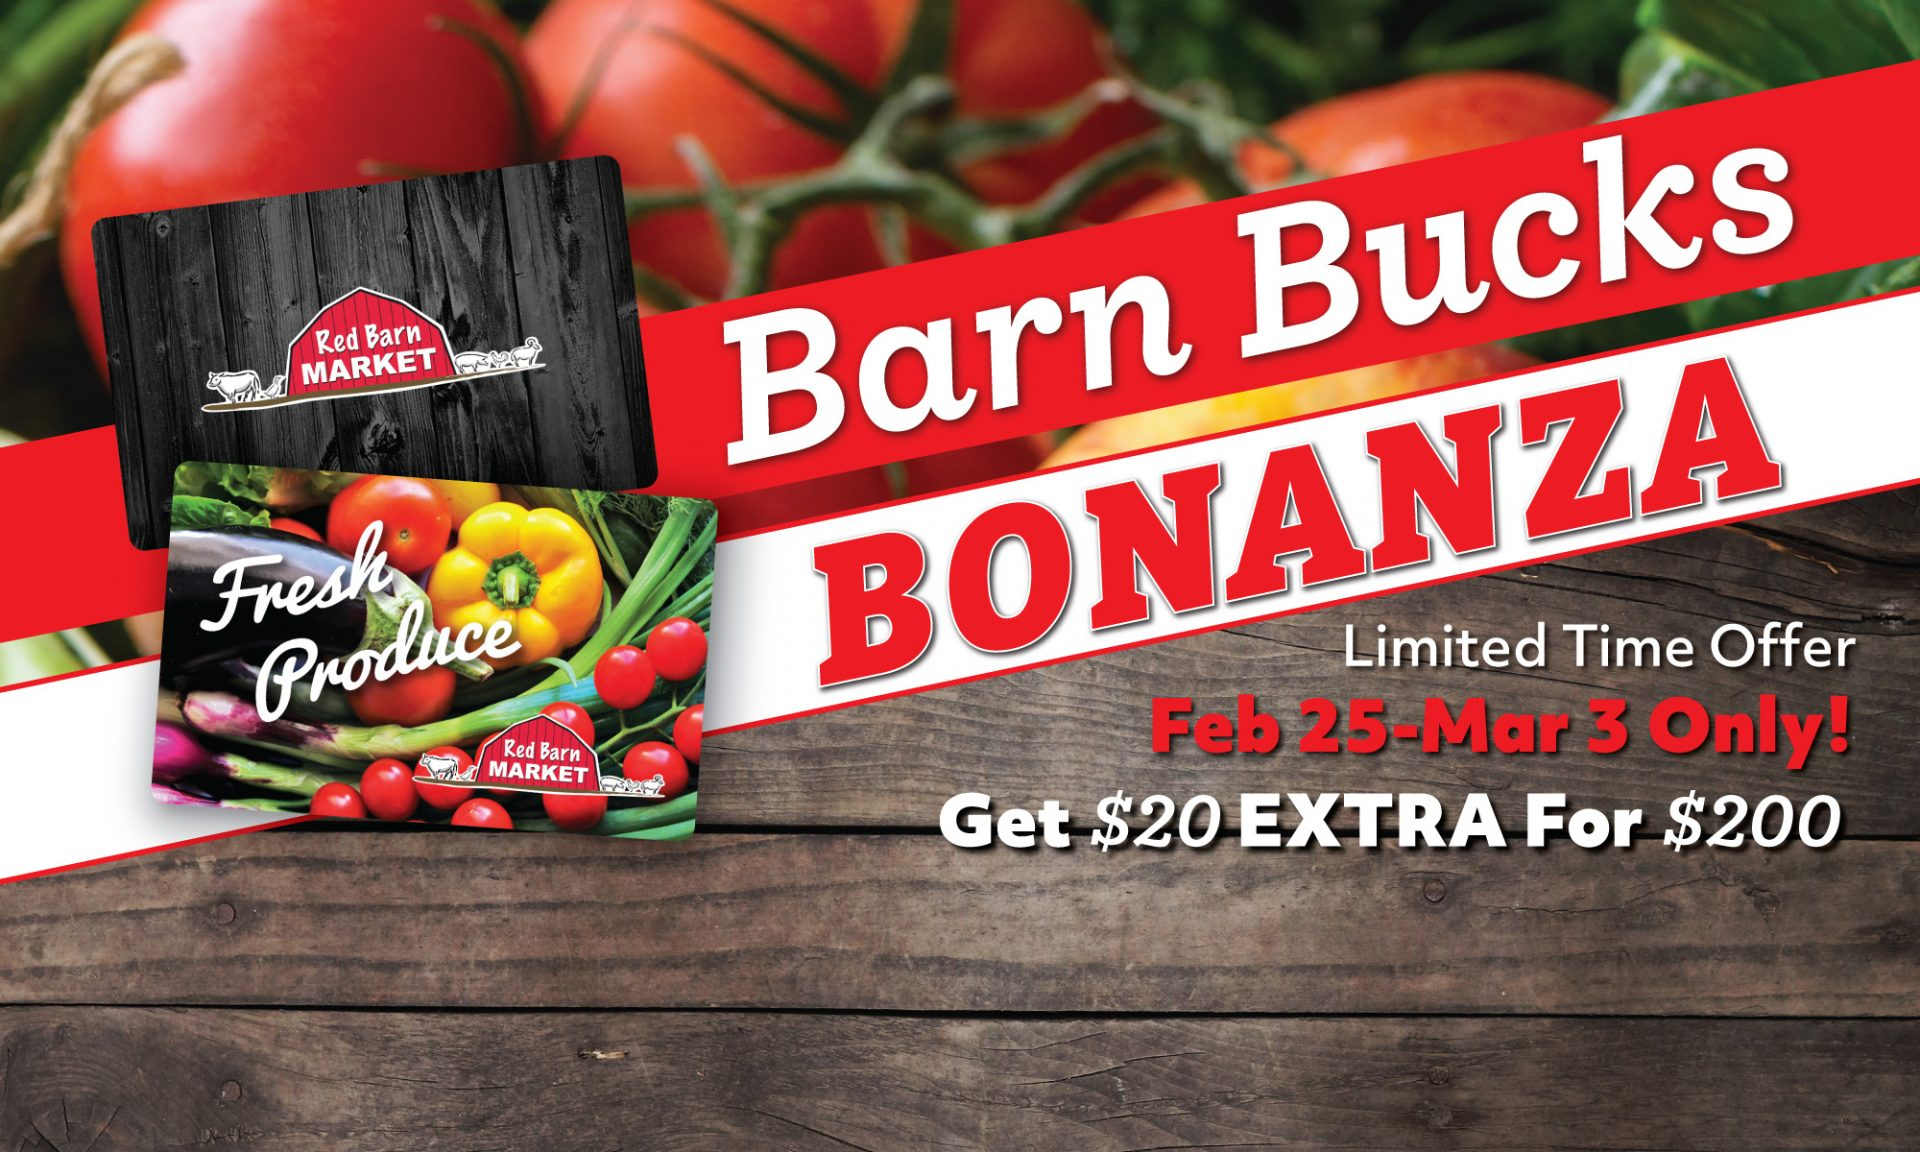 Barn Bucks Bonanza! February 25th-March 3rd Do you like FREE groceries? We do, obviously. Barn Bucks Bonanza is back this week, and this week only.<br />